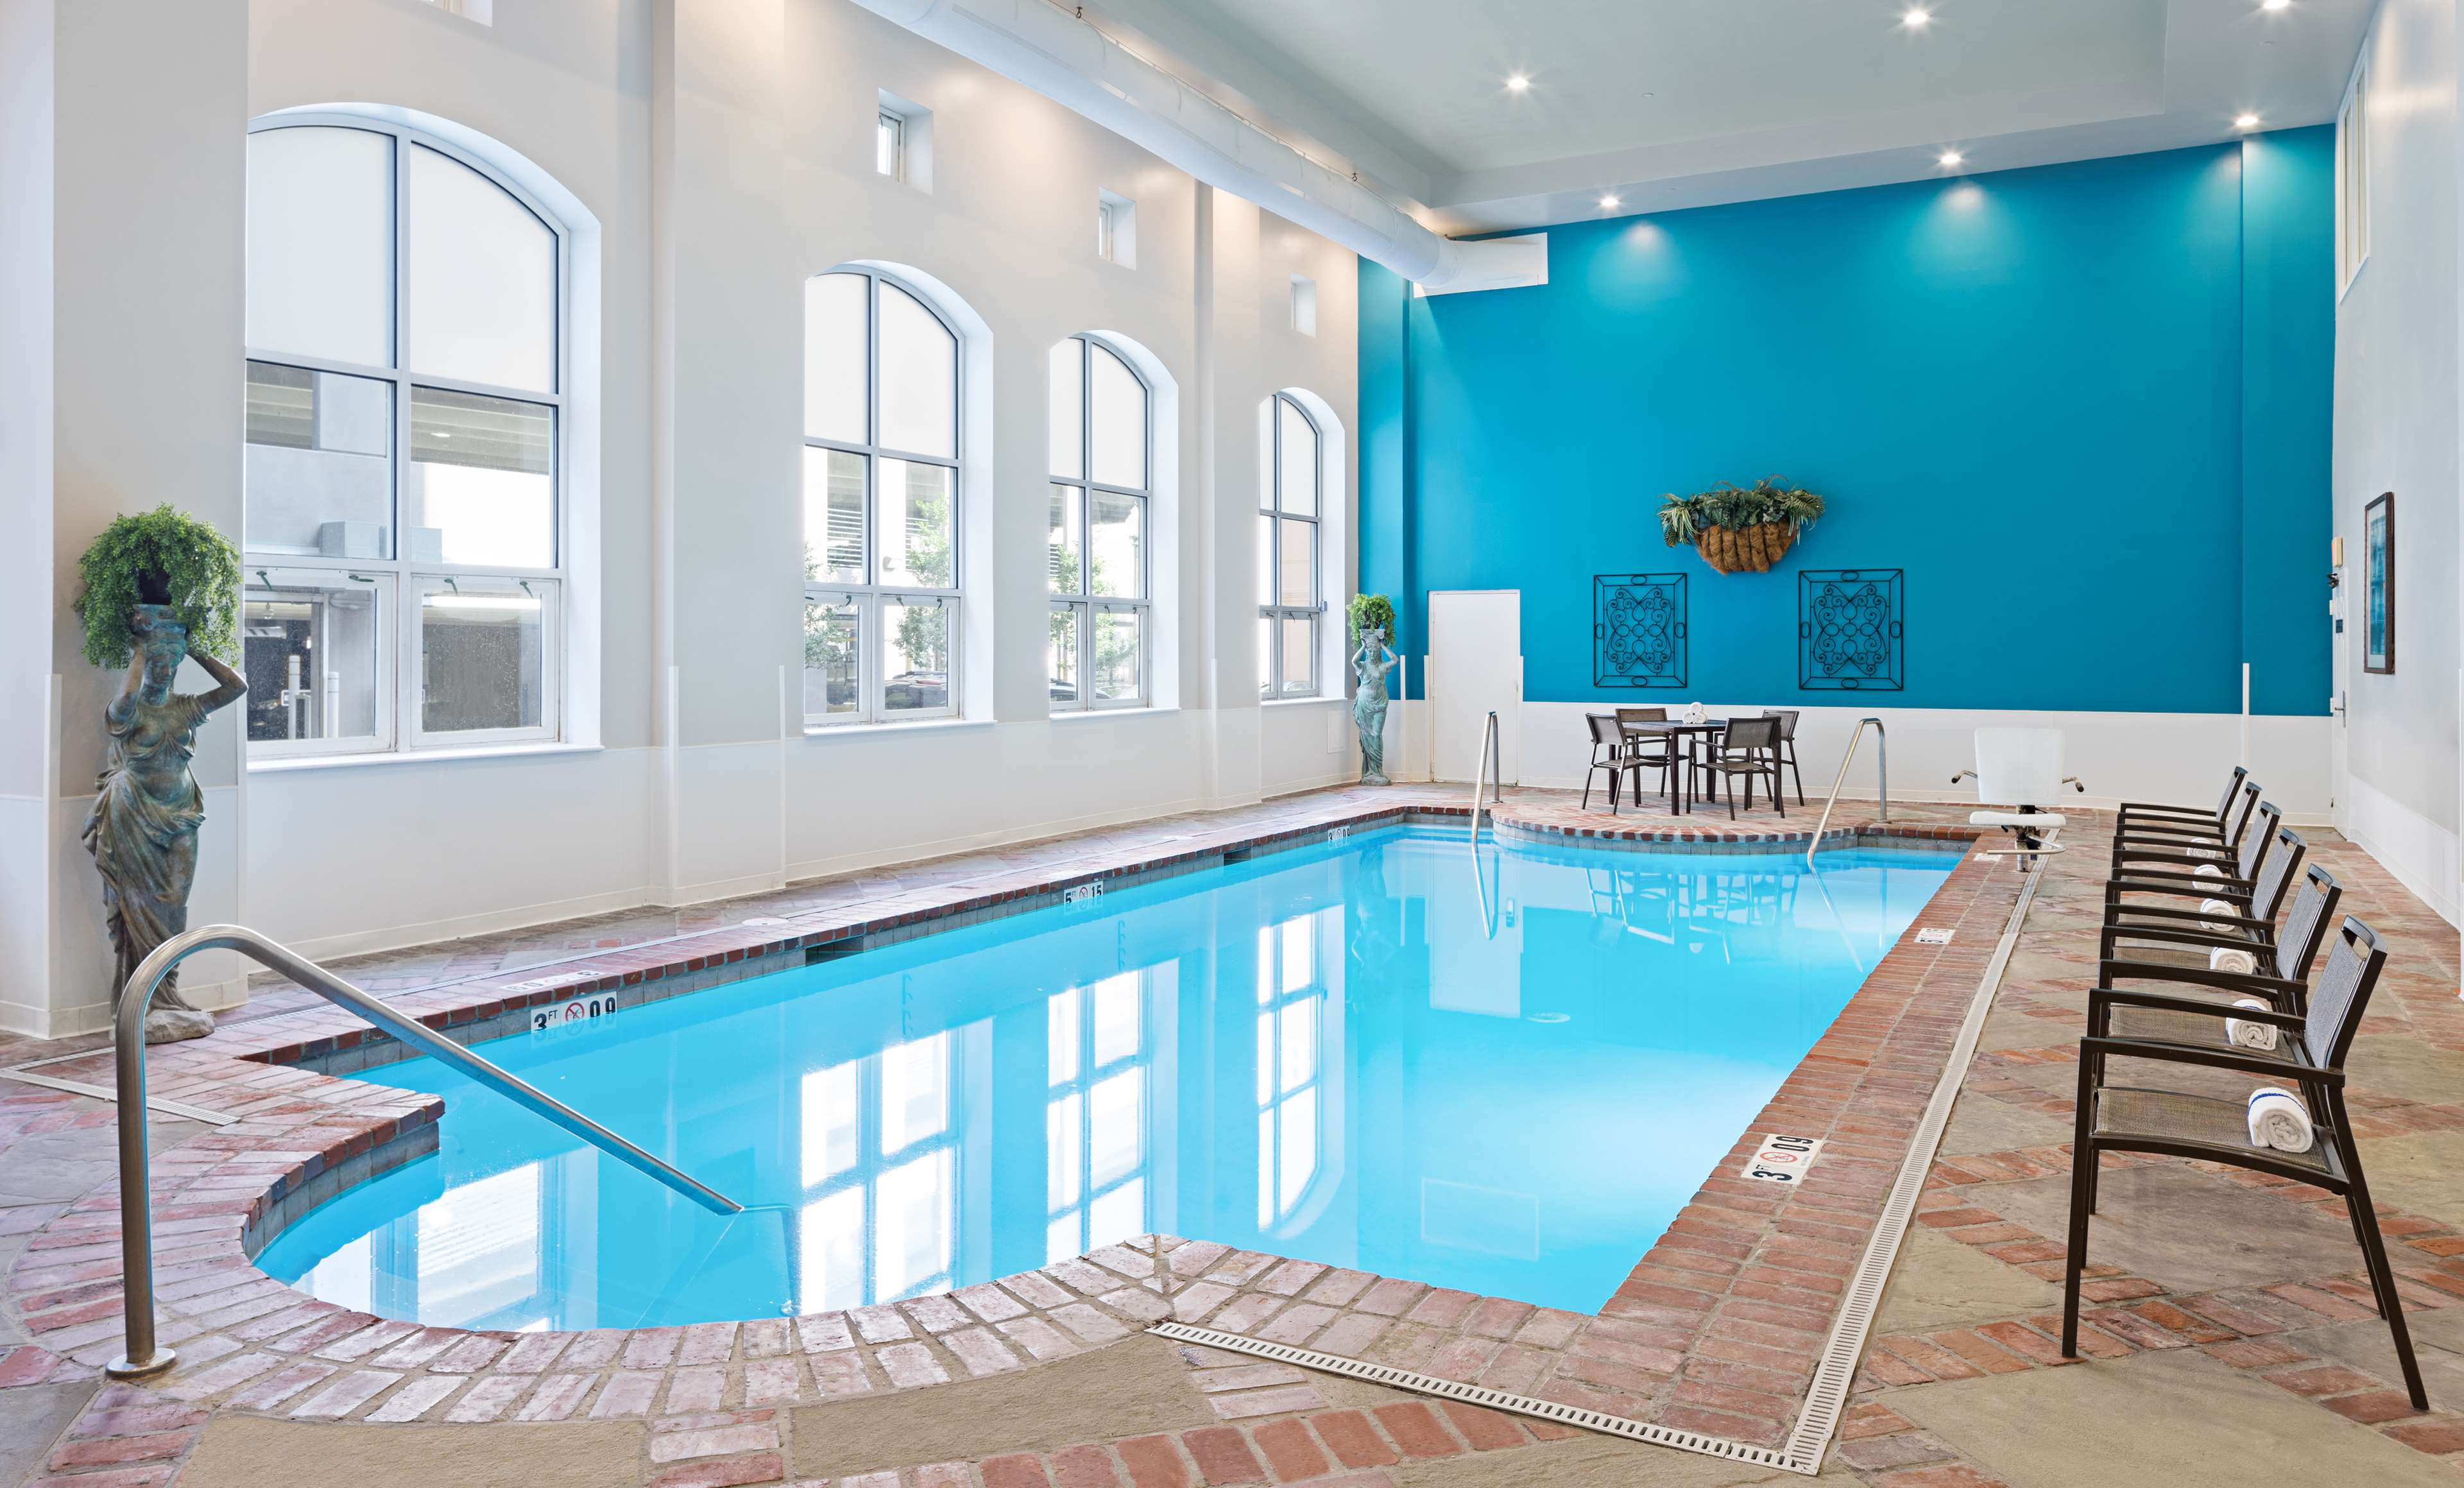 Homewood Suites by Hilton New Orleans image 6